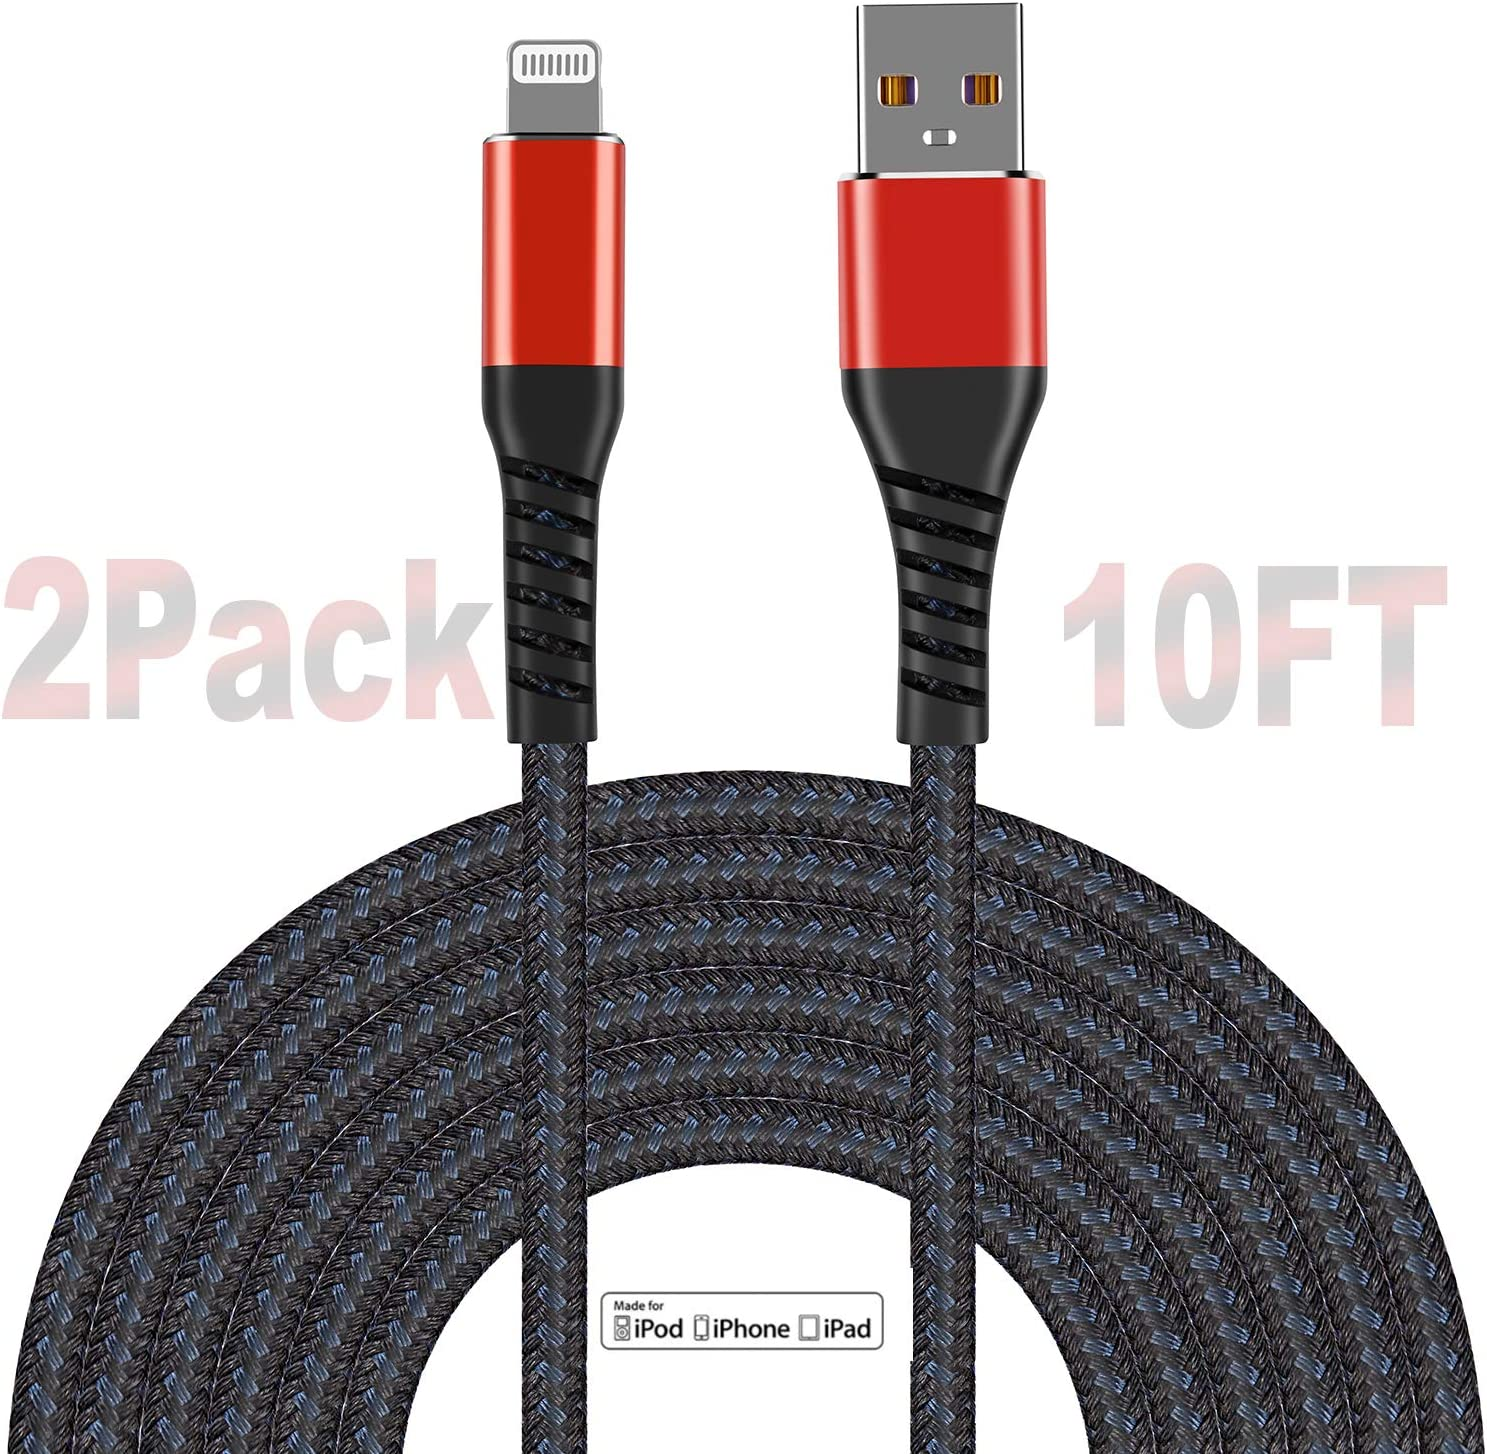 Apple MFi Certified (2pack) iPhone Charger 10ft, Lightning Cable Extra Long 10 Foot Charger Cable, Fast iPhone USB Cord for iPhone 11/11Pro/11Max/ X/XS/XR/XS Max/8/7/6/5S/SE/iPad Mini Air/Red